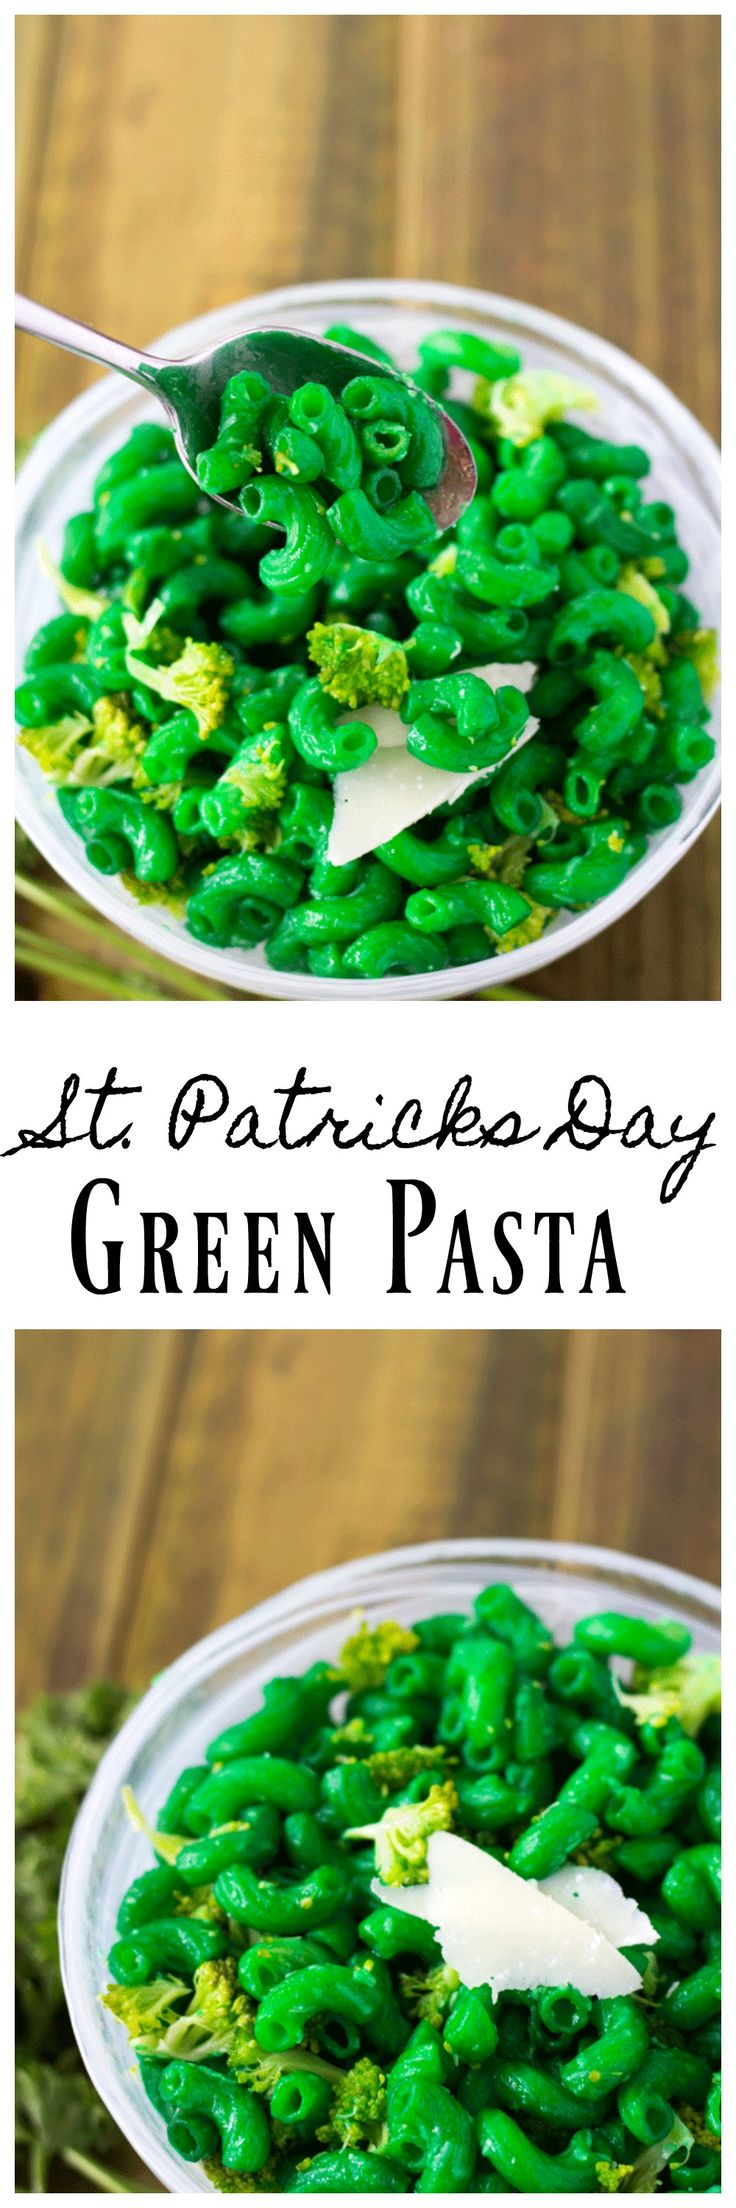 Everyone will be green with envy when they see your green St.Patricks day lunch! This pasta is so easy with just a few drops of food coloring.